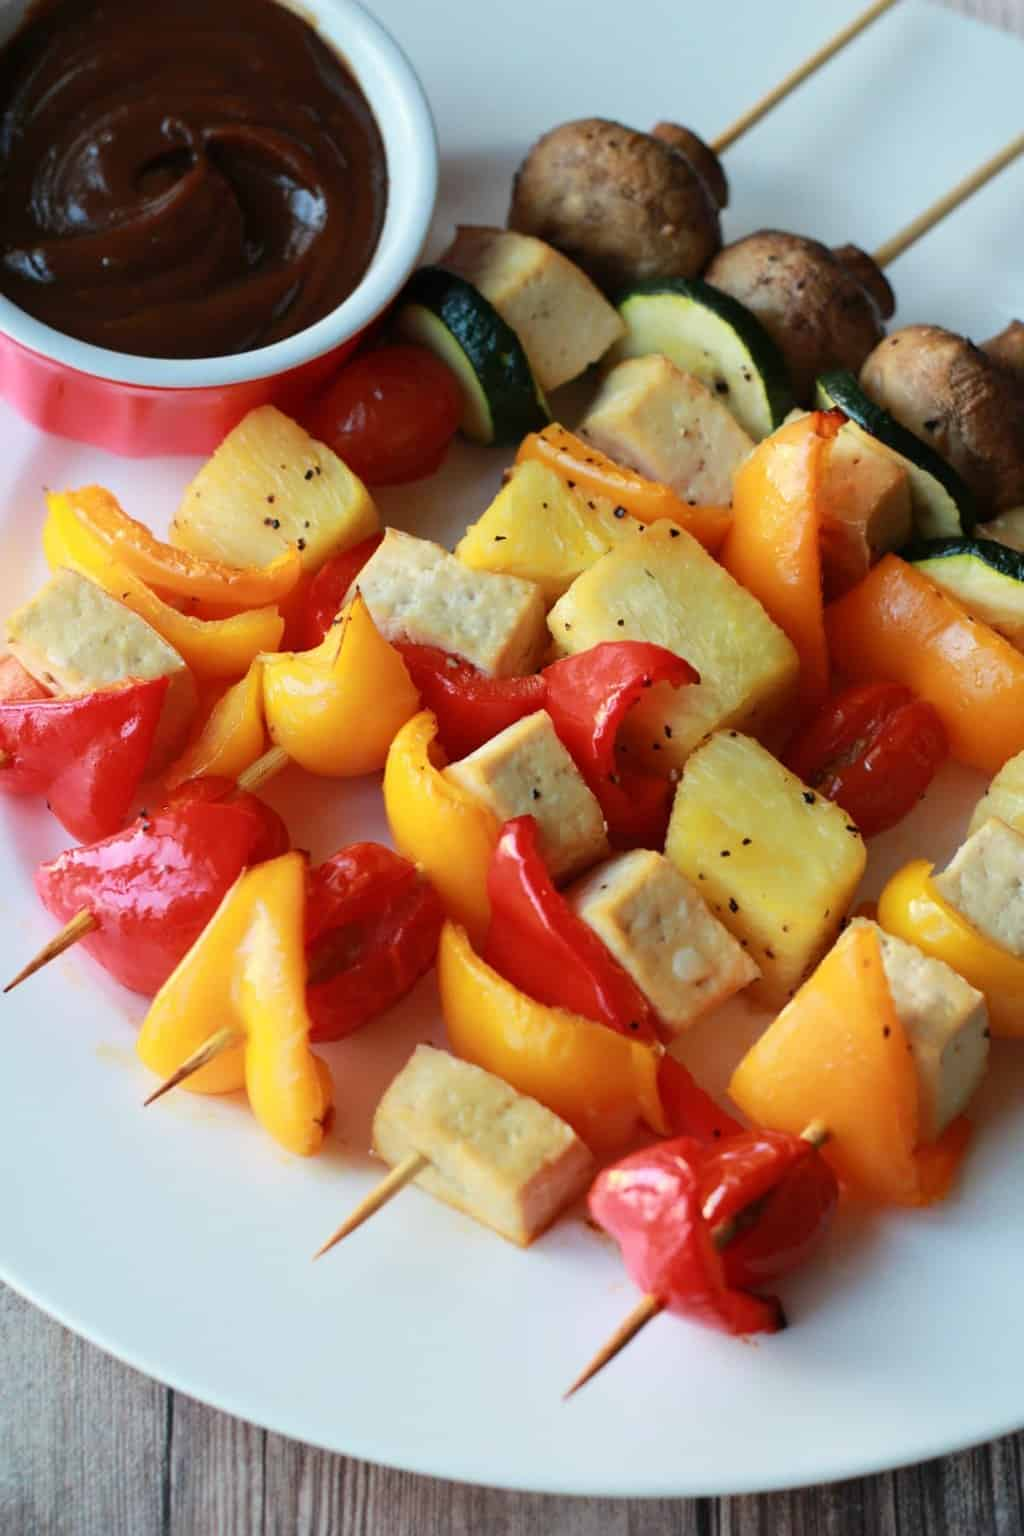 Fabulously colorful Vegetable Skewers served with a soy peanut dipping sauce! #vegan #lovingitvegan #glutenfree #healthy #vegetableskewers #kebabs